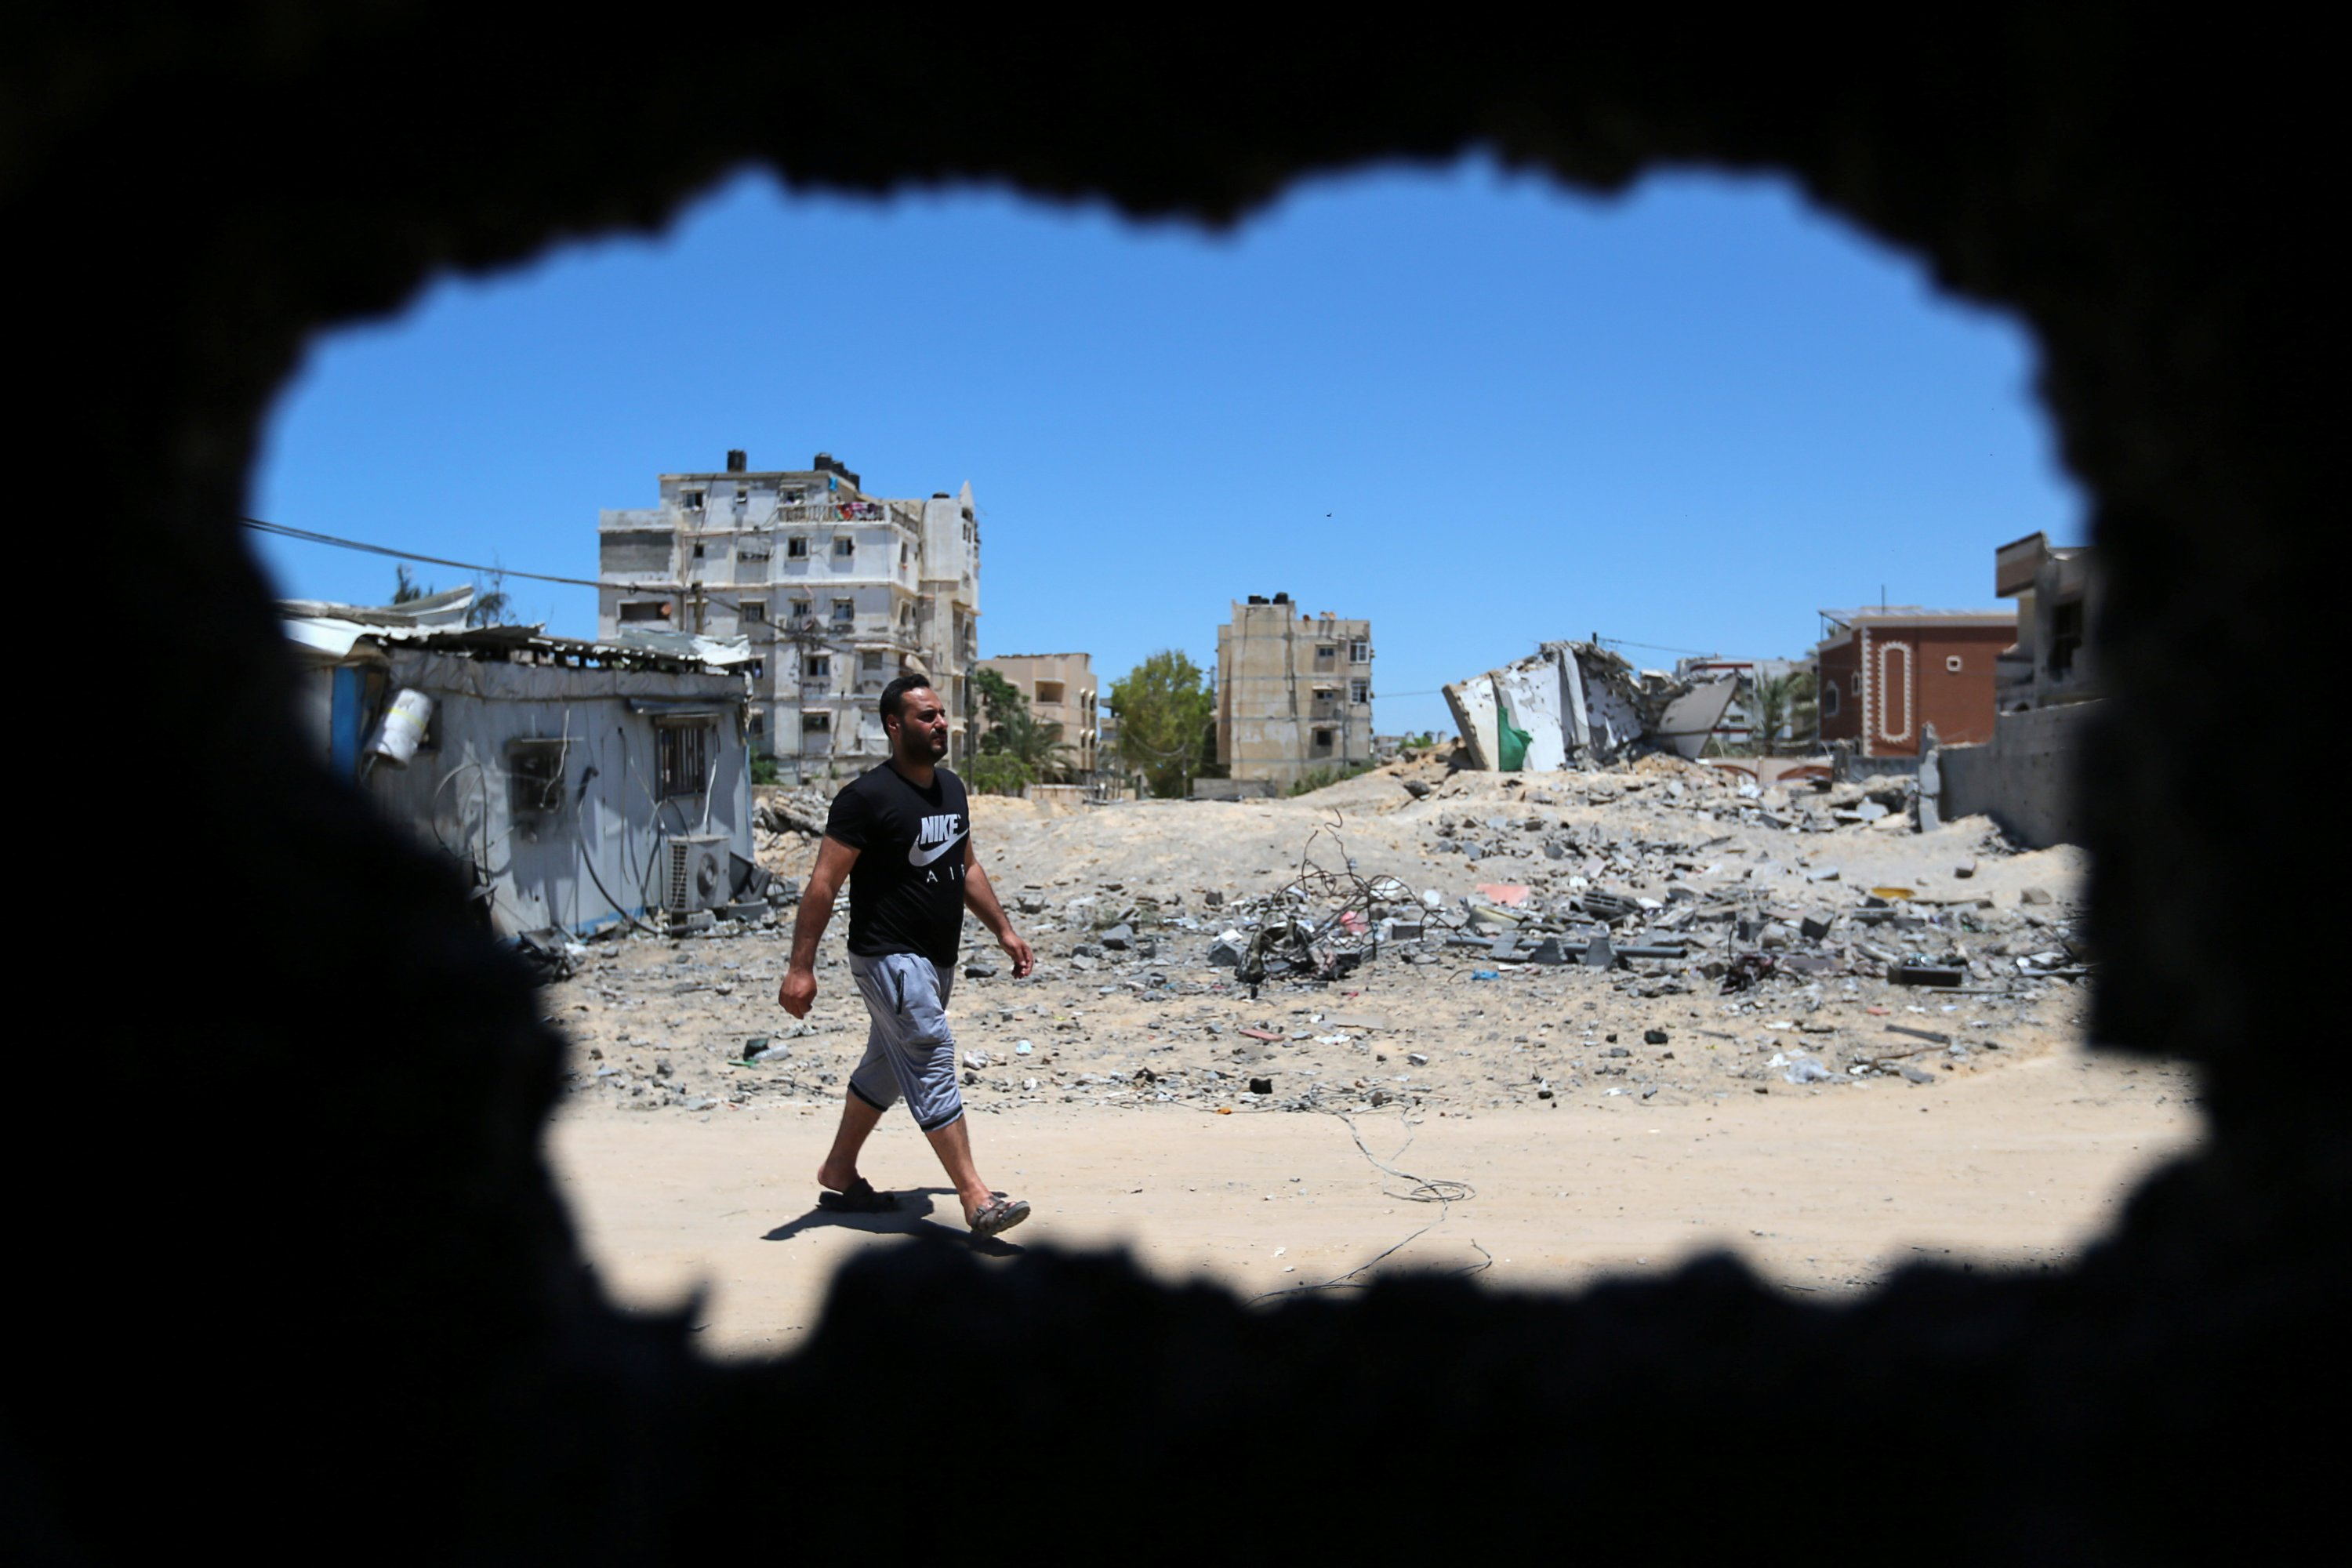 Ibrahim Dwedar, who evacuated Palestinian Omar Shahin's horses, which were wounded during the recent Israeli airstrikes, is seen through a damaged stable in the northern Gaza Strip, May 24, 2021. (Reuters Photo)